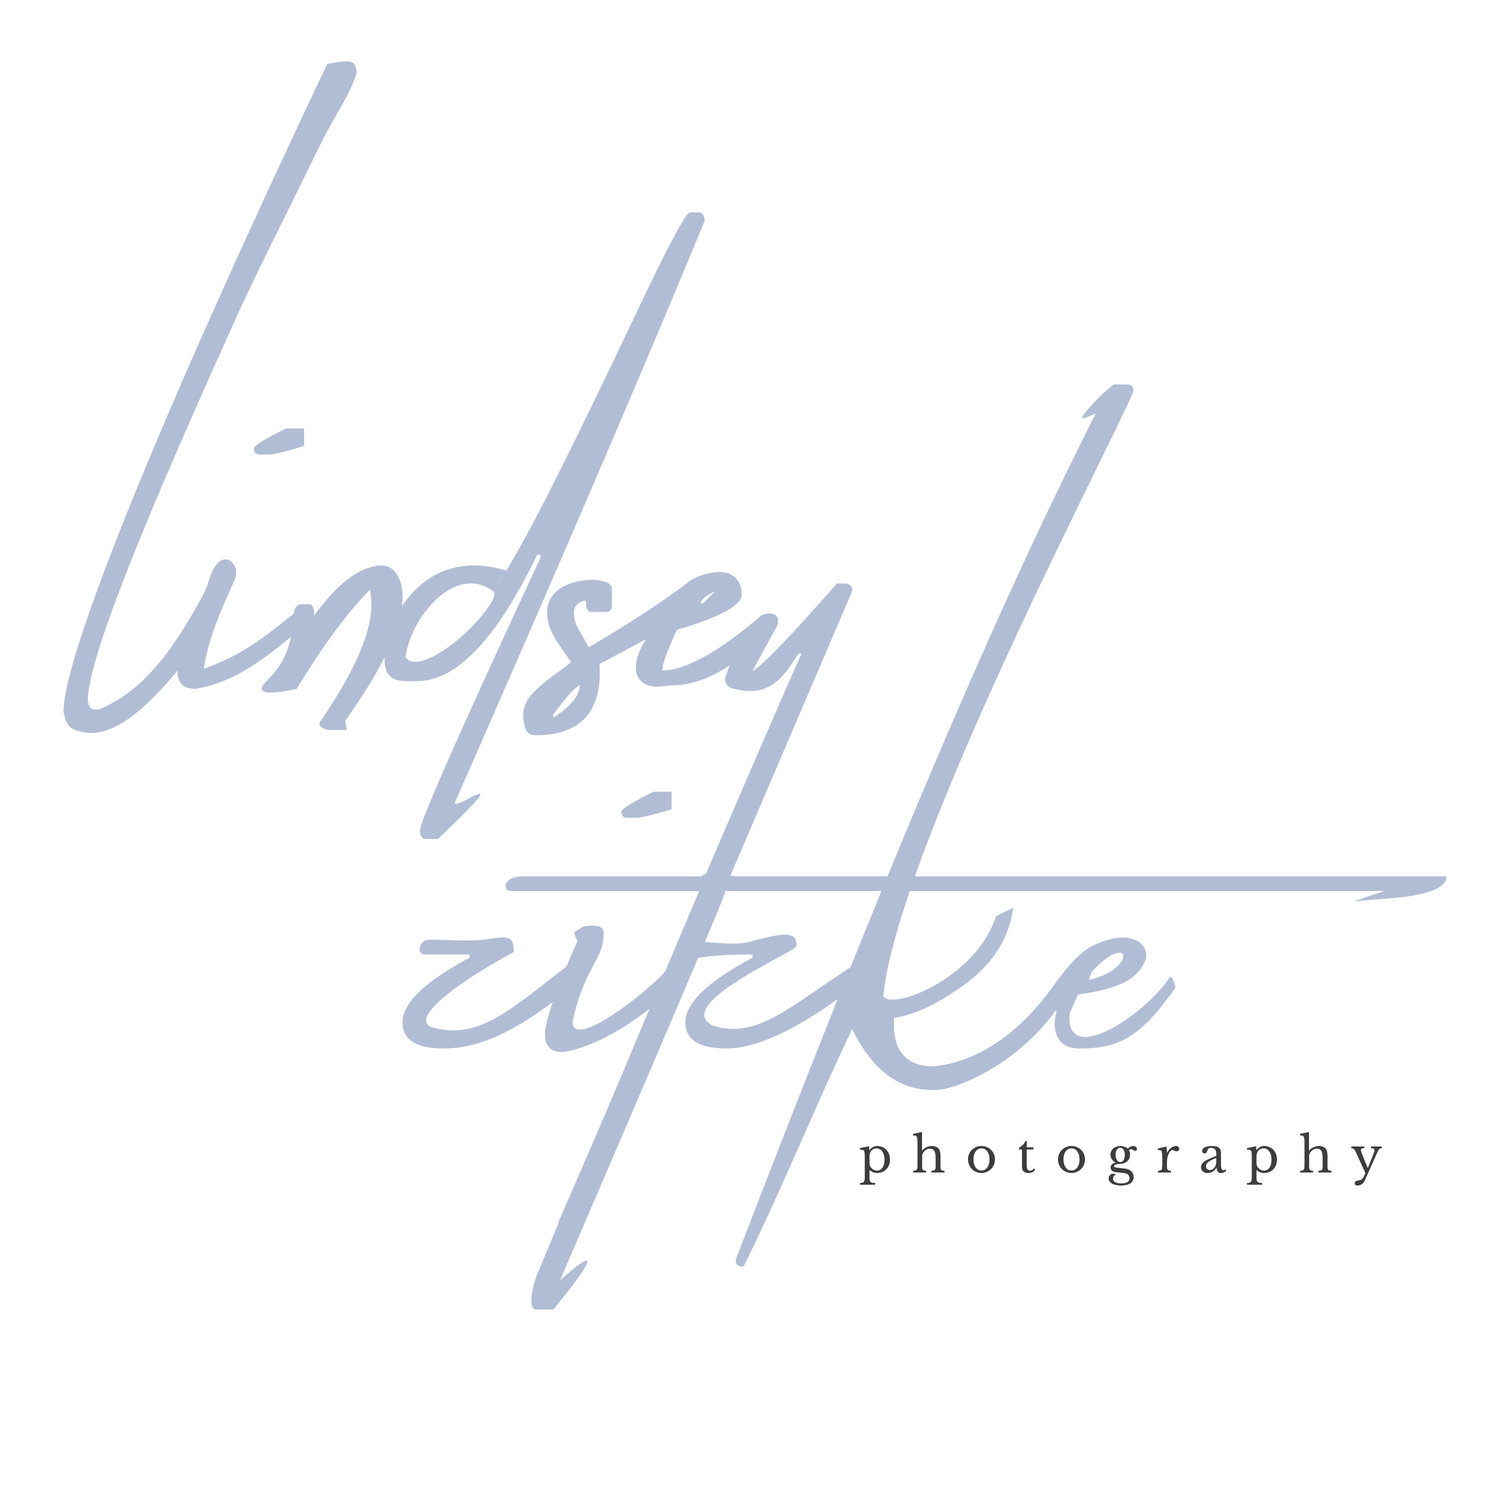 Lindsey Zitzke Photography